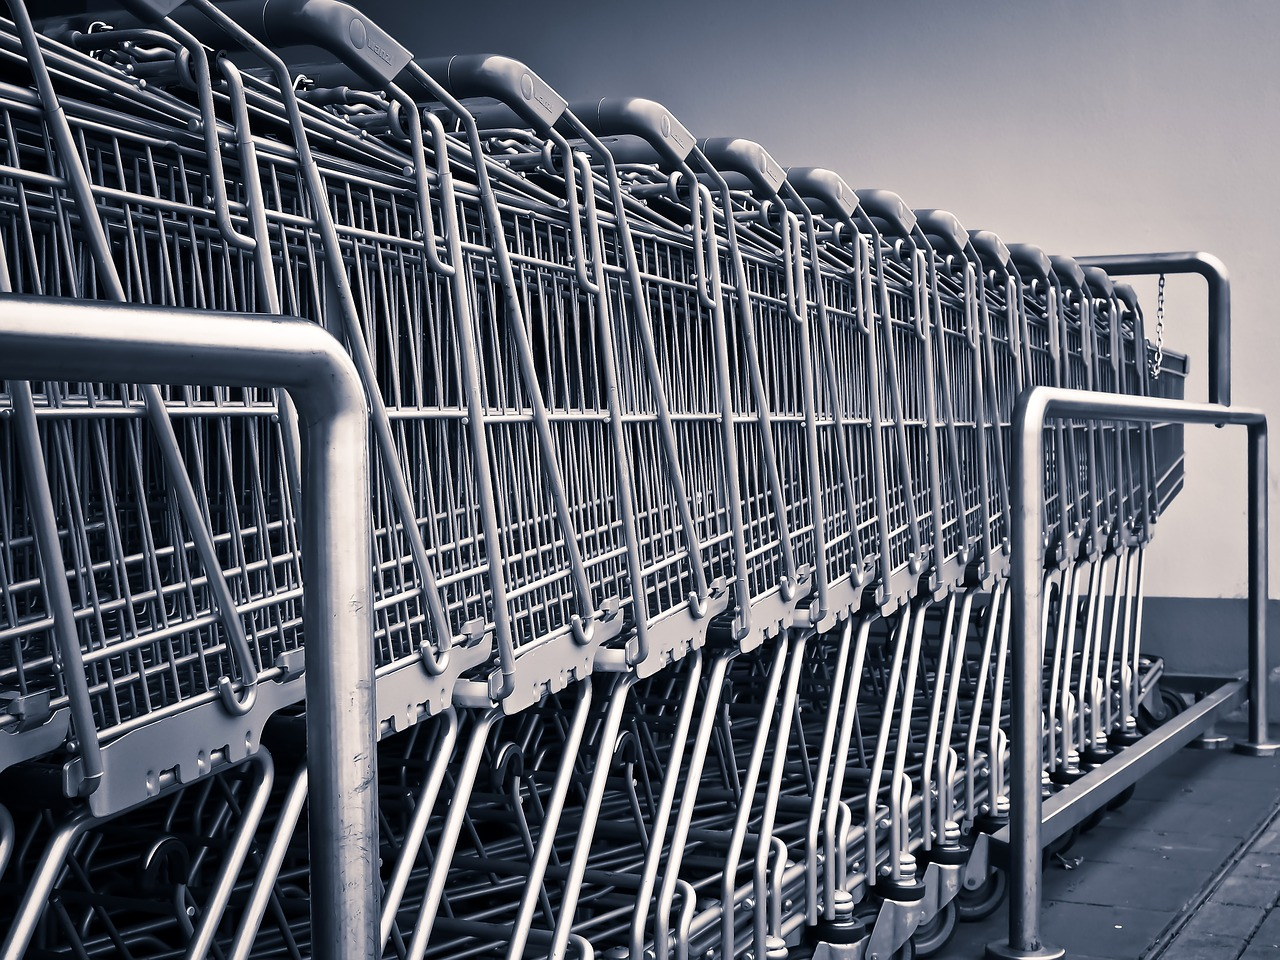 10 Reasons You Should Have Groceries Delivered to Your Home - House of Fauci's